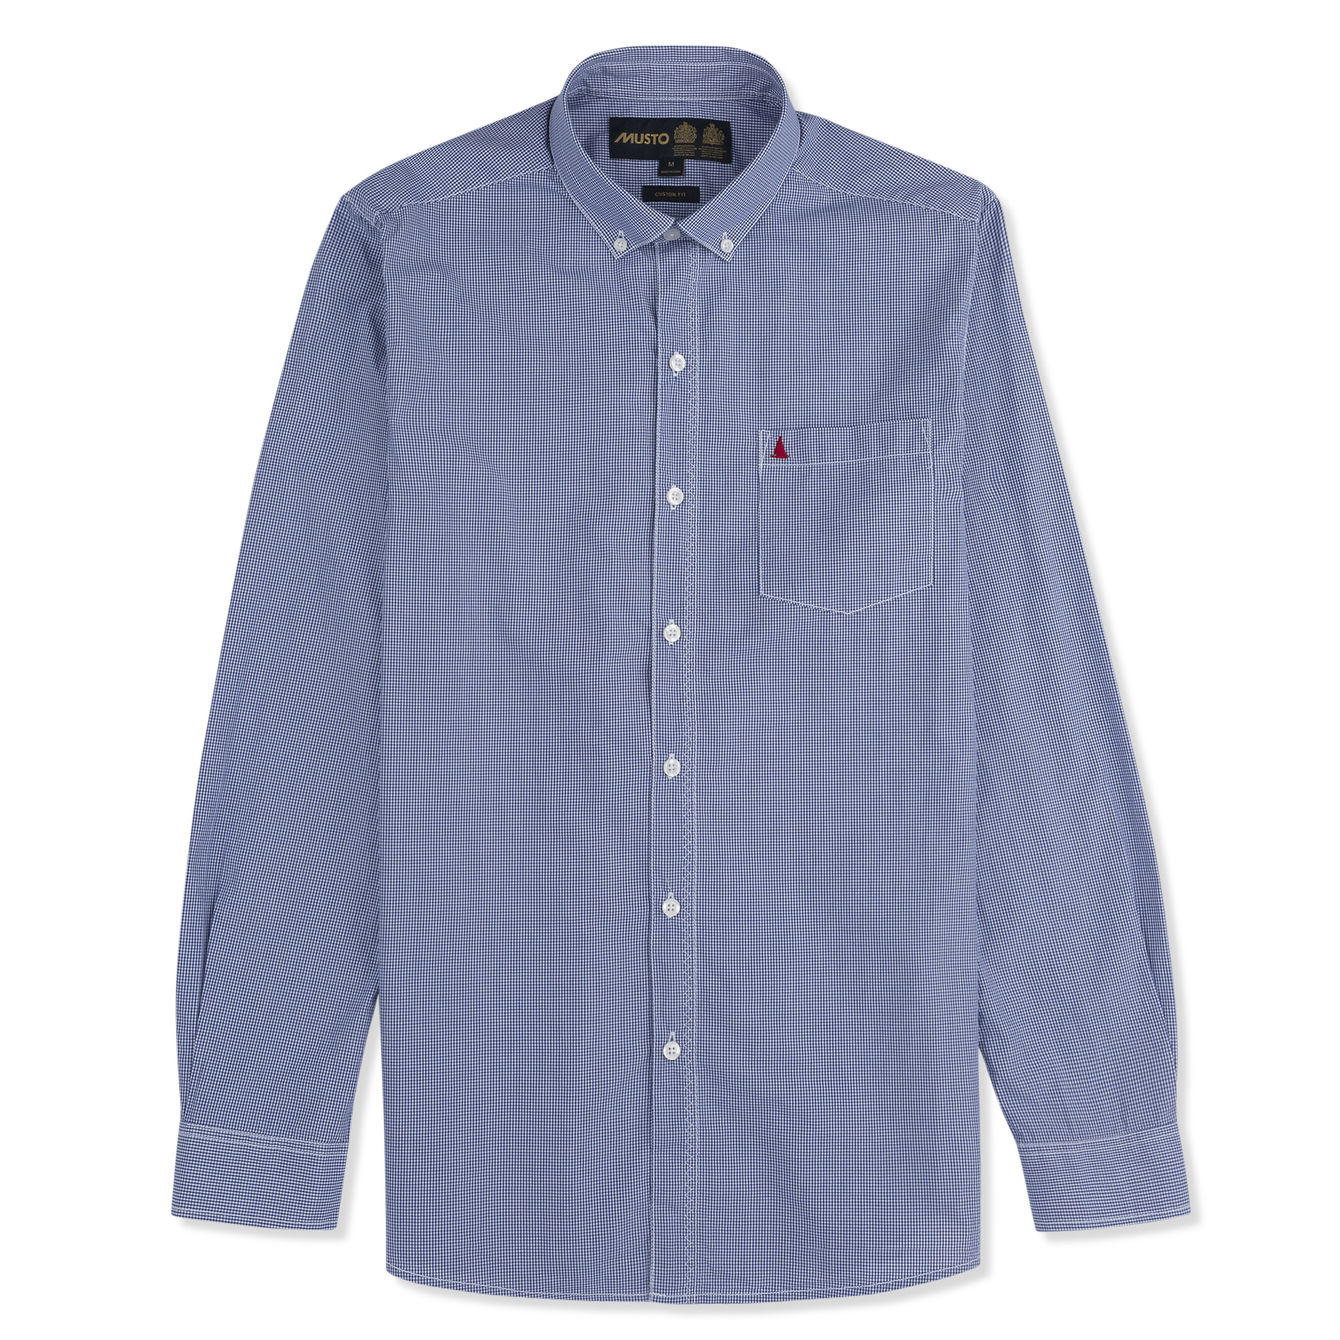 CHARLESTON LS GINGHAM SHIRT